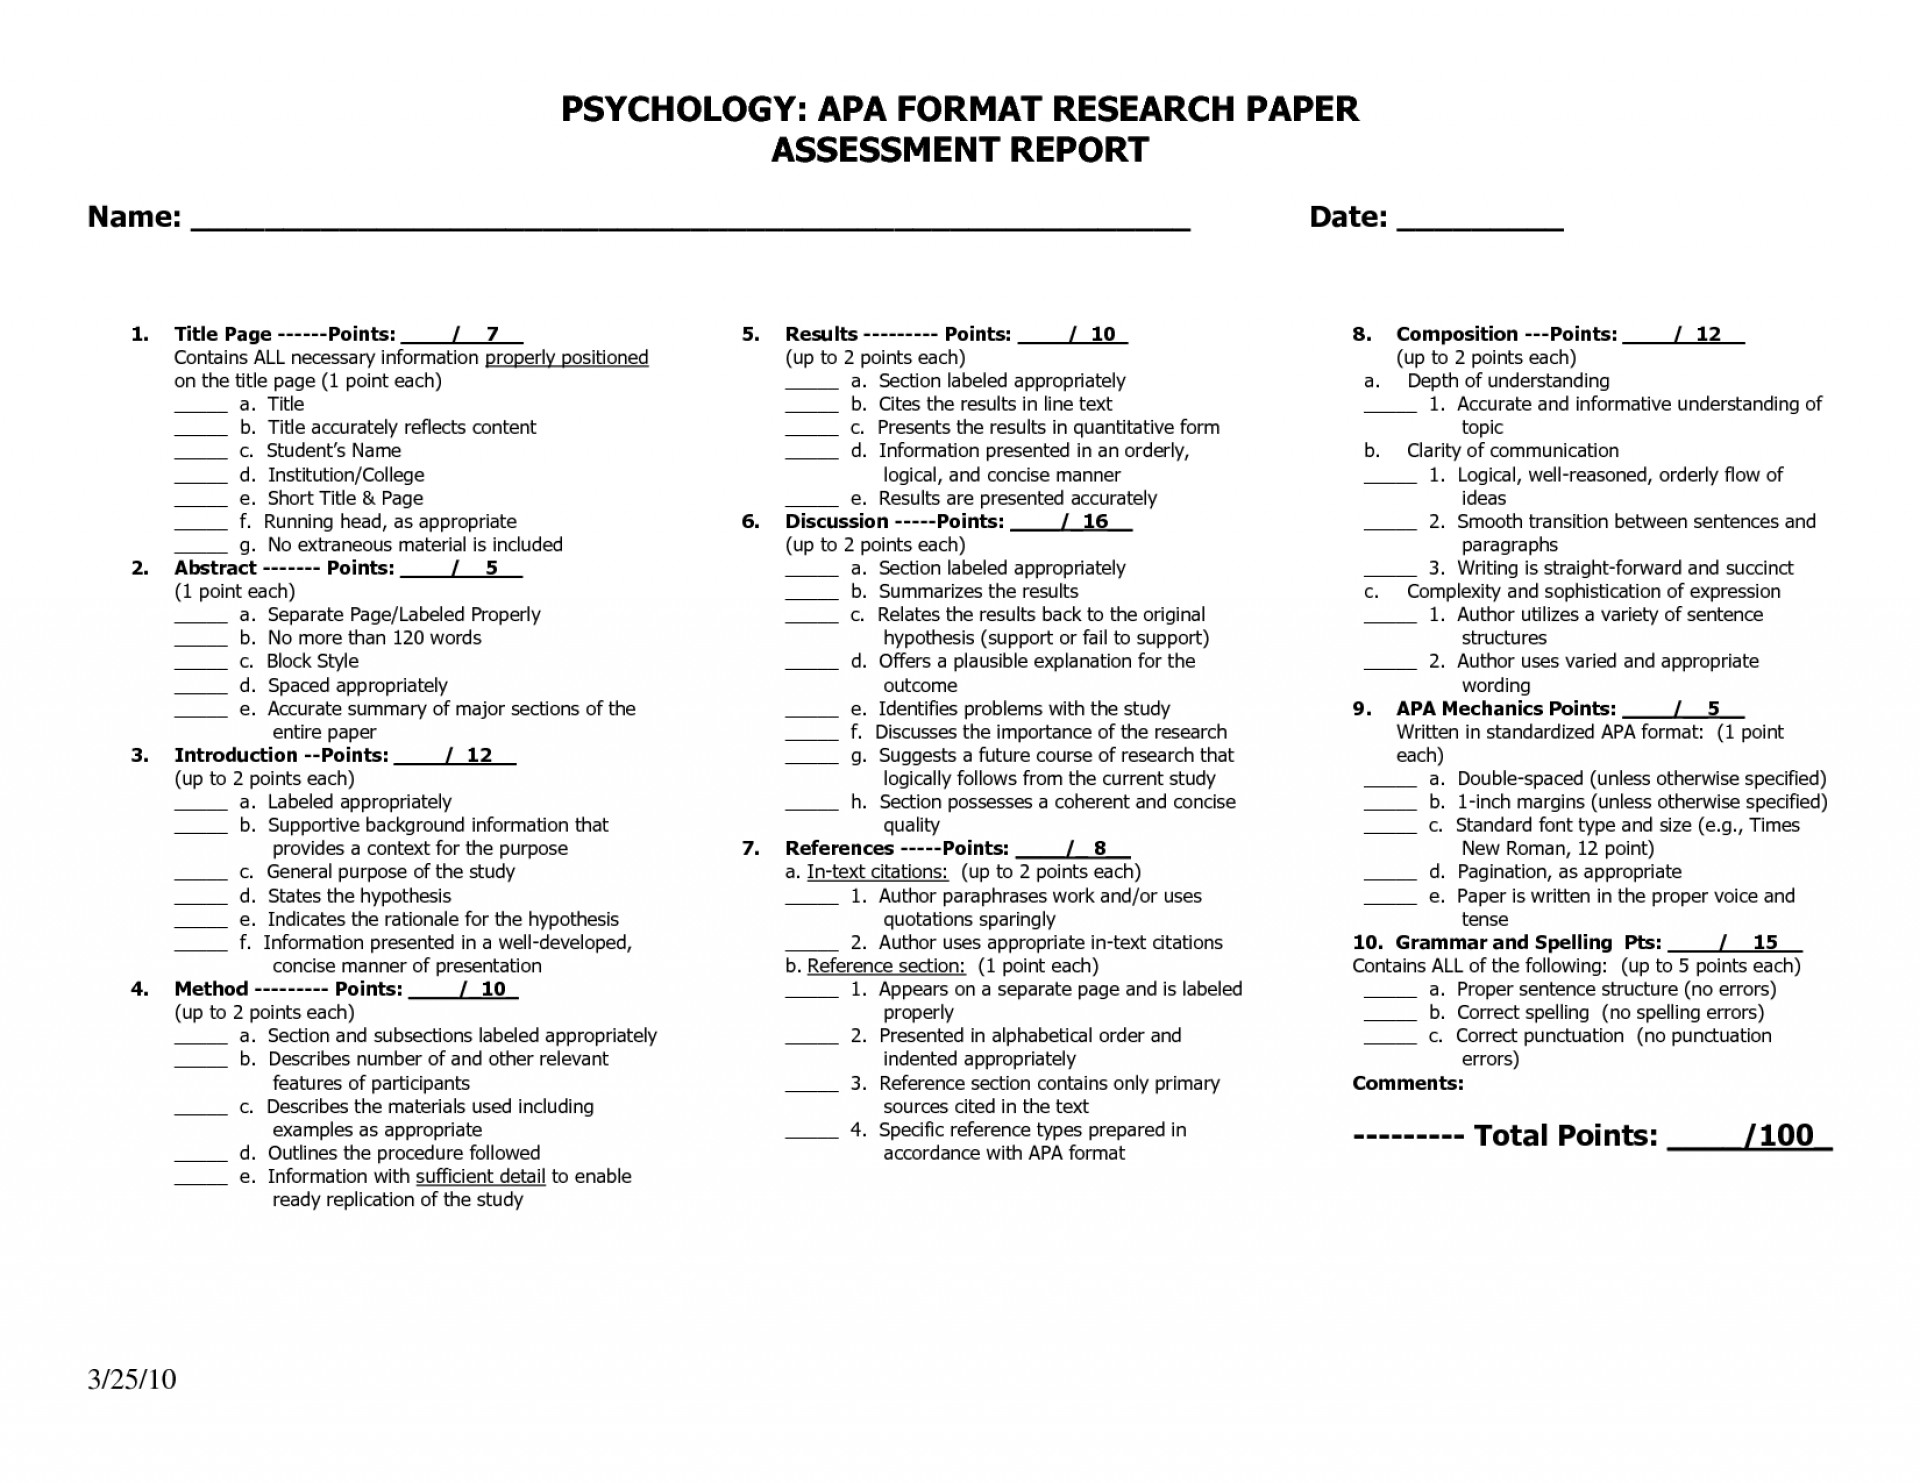 017 Examples Of Psychology Research Paper Topics Apamat Striking 1920